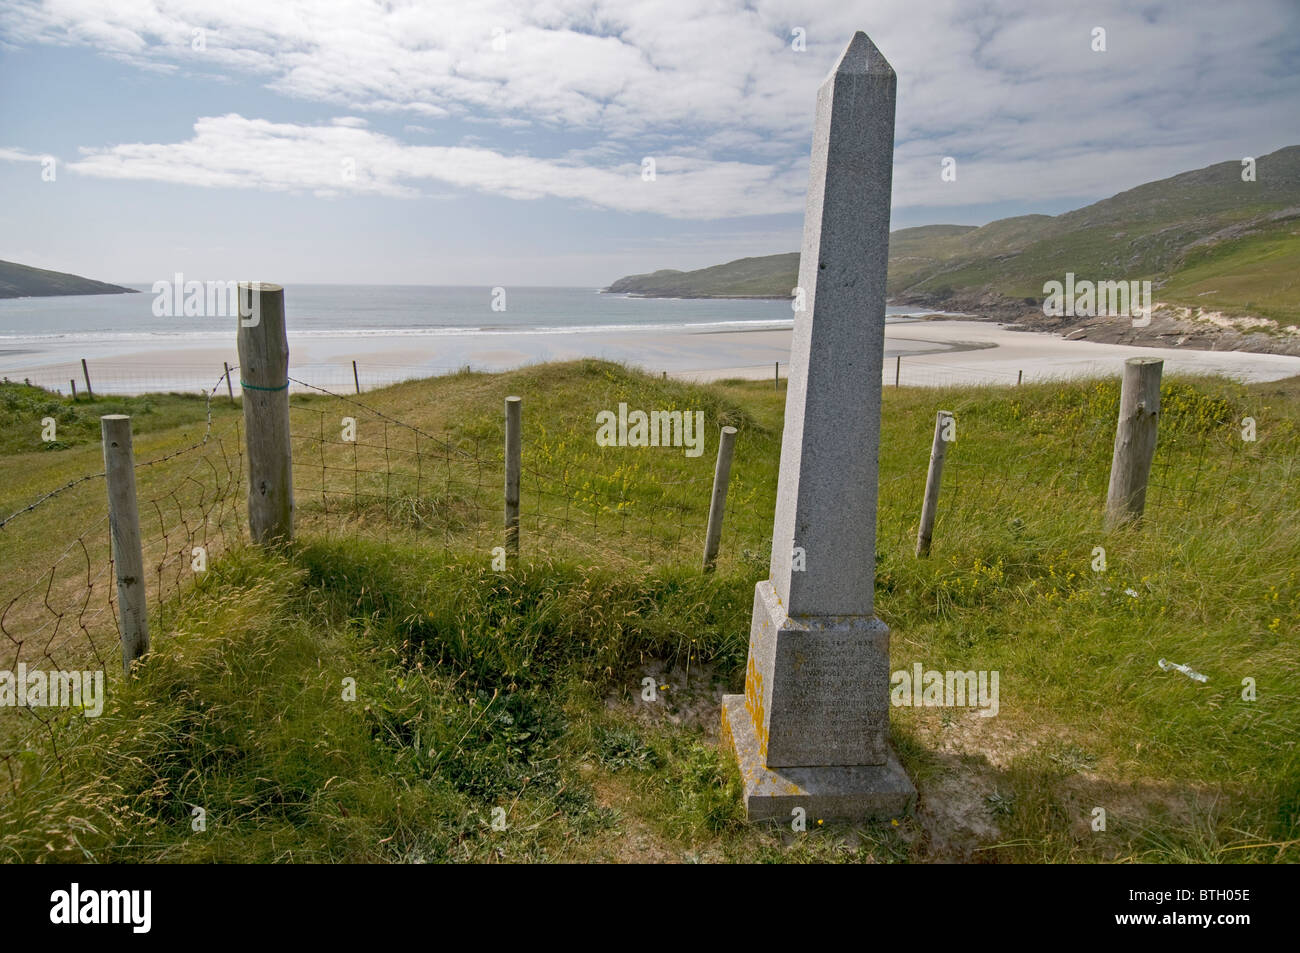 Annie Jane shipwreck Memorial at Bagh Siar or West Bay Isle of Vatersay, Hebrides.  SCO 6573 - Stock Image